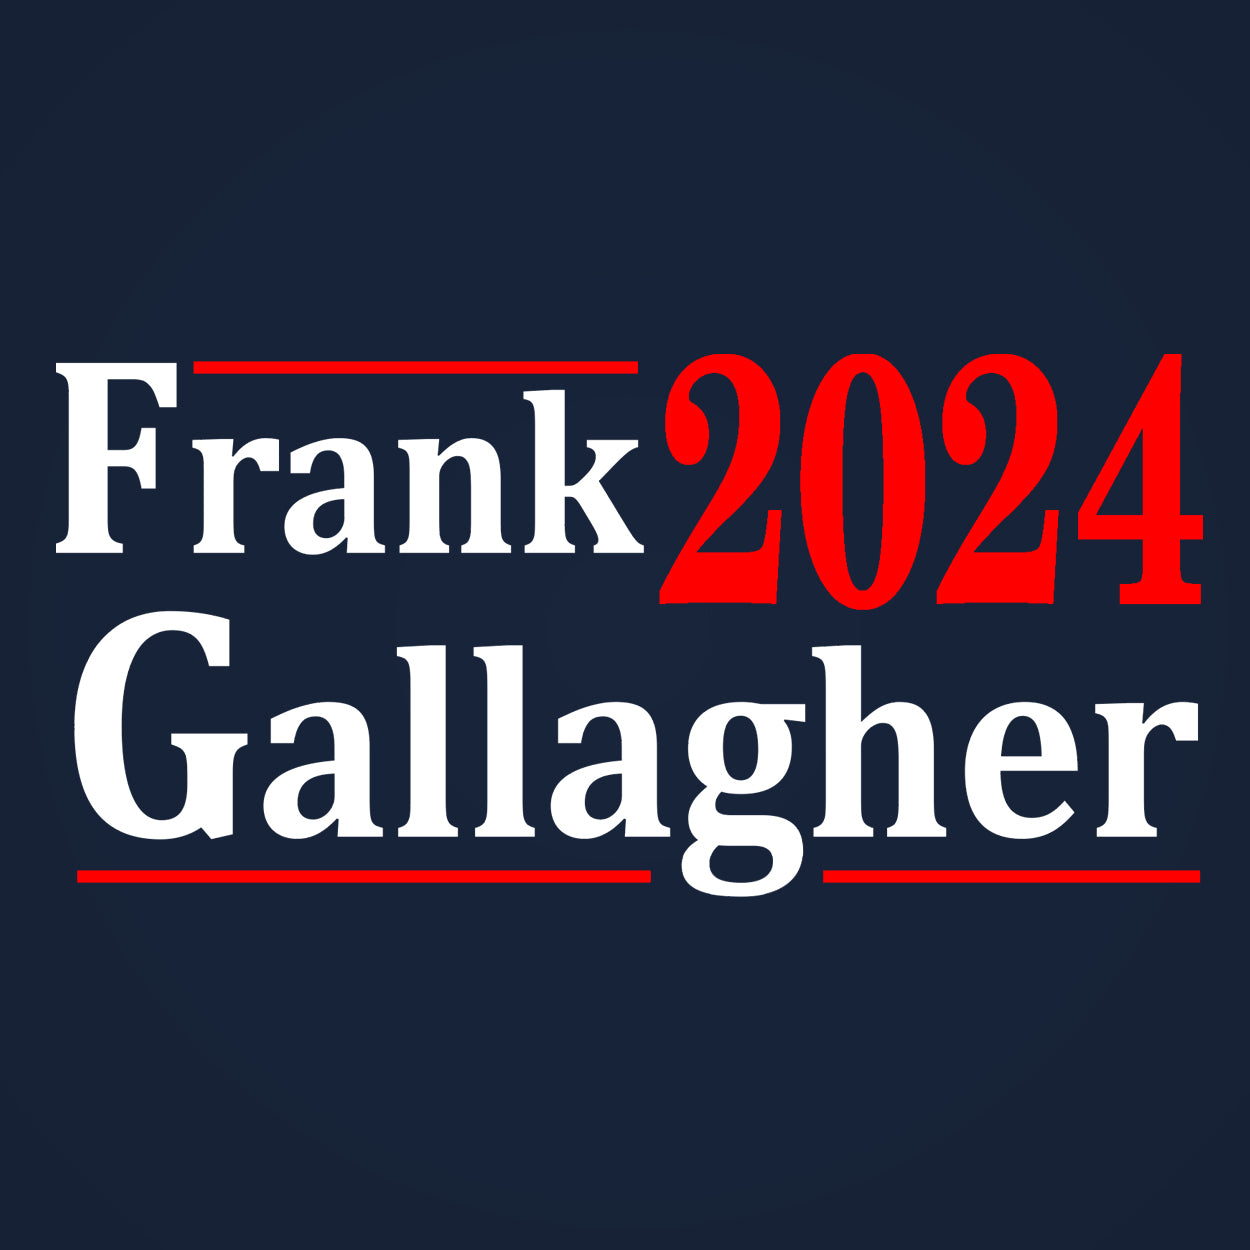 Frank Gallagher 2024 ELECTION